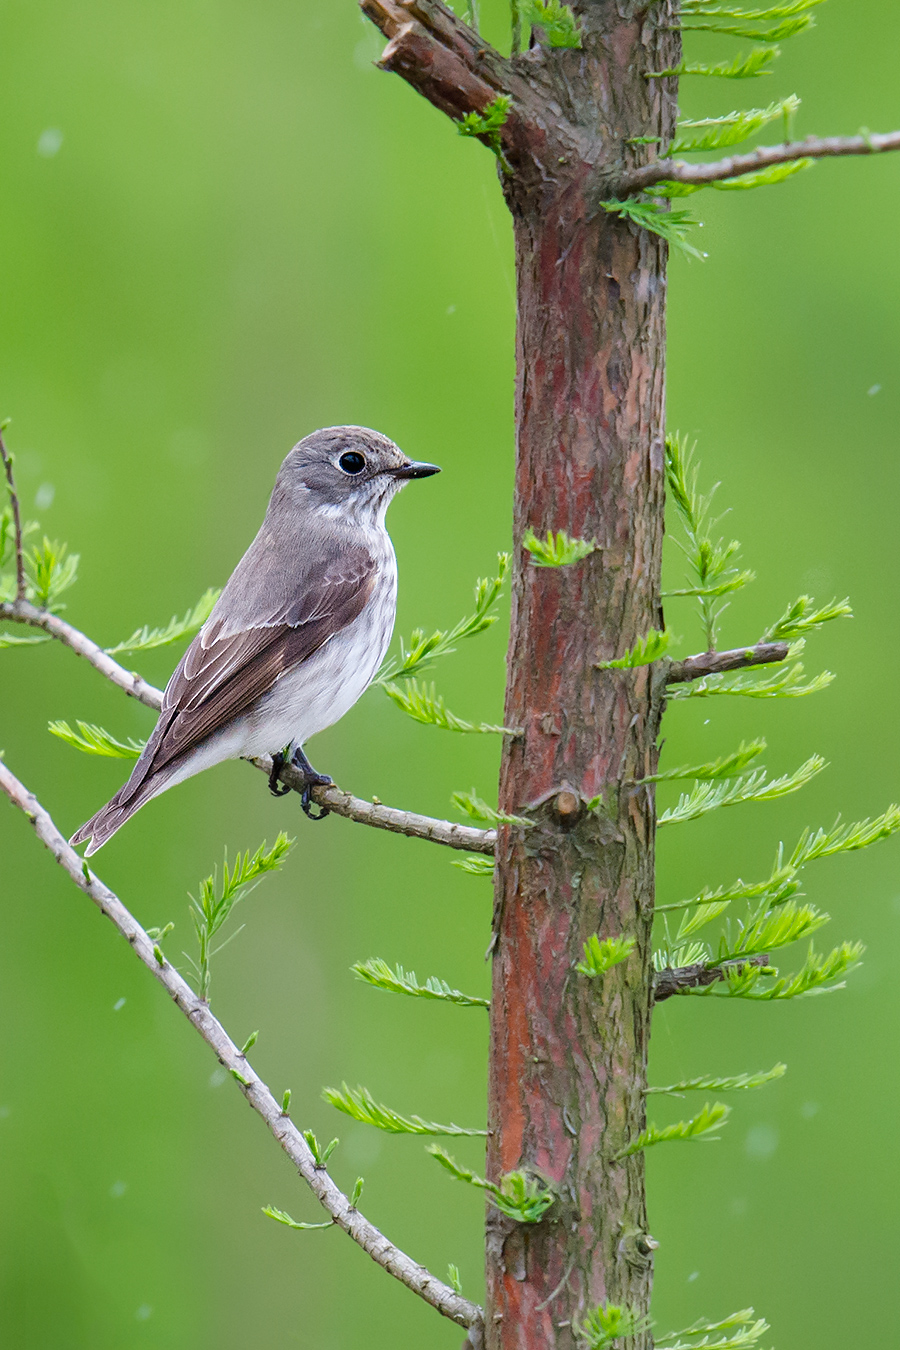 Flycatcher ordinary - a multi-legged guest in the apartment